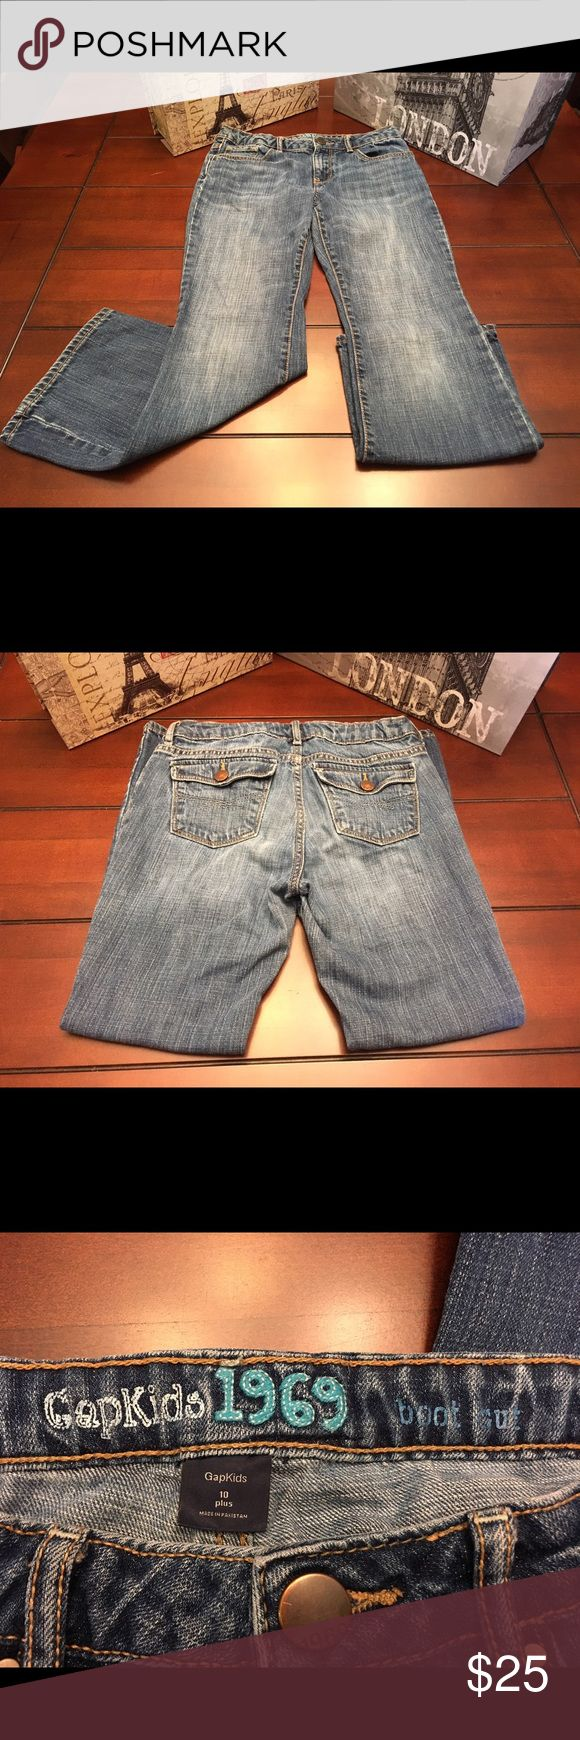 Gap Boot Cut Jeans, Size 10 Plus Gap Boot Cut Jeans, Size 10 Plus  Medium blue wash and in great condition. ☺ Inseam is 23.5 inches, leg opening is 8 inches, waist measures 26 inches. GAP Bottoms Jeans